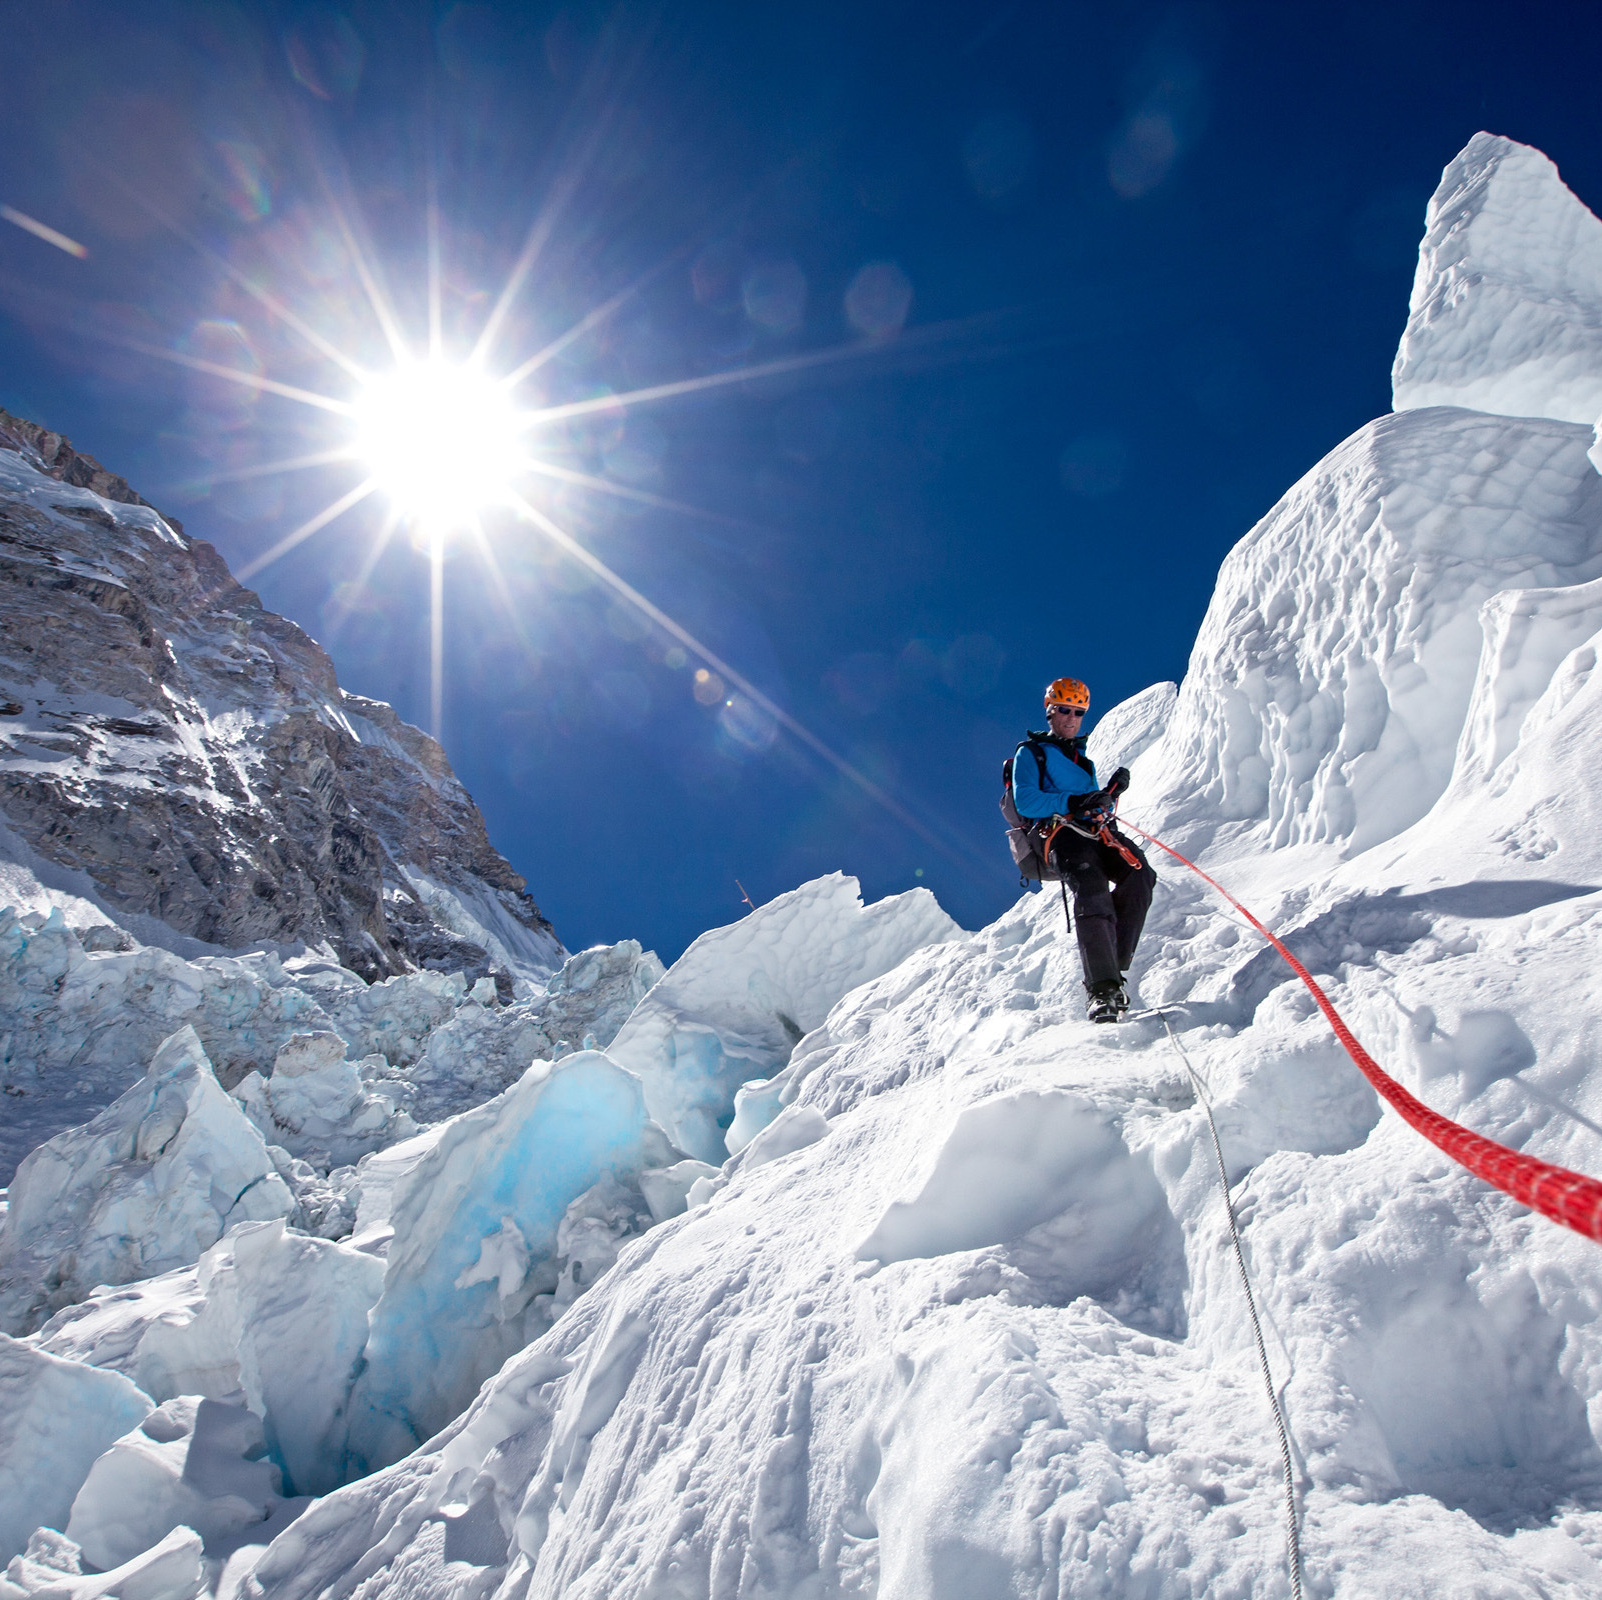 Using a fixed rope for safety, mountaineer Conrad Anker descends an ice step in the Khumbu Icefall, one of the most dangerous parts of the route to and from Everest's summit. Anker is the author of The Call Of Everest, published by National Geographic.